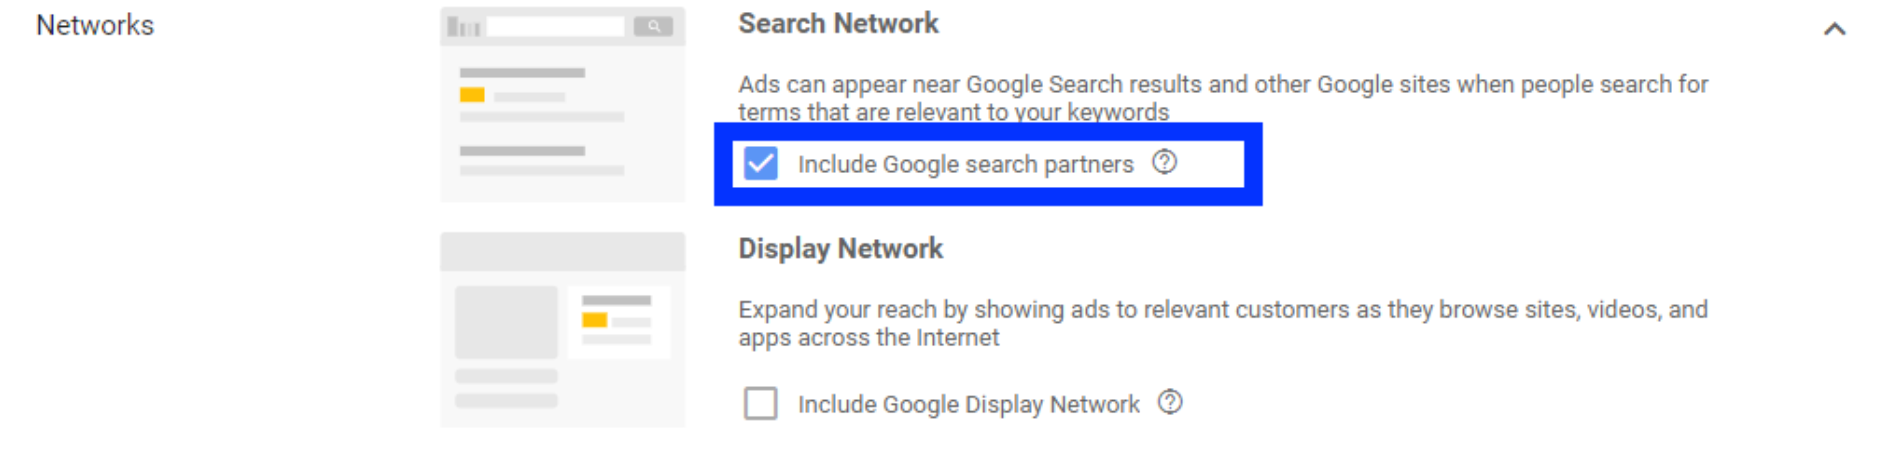 Google search partners